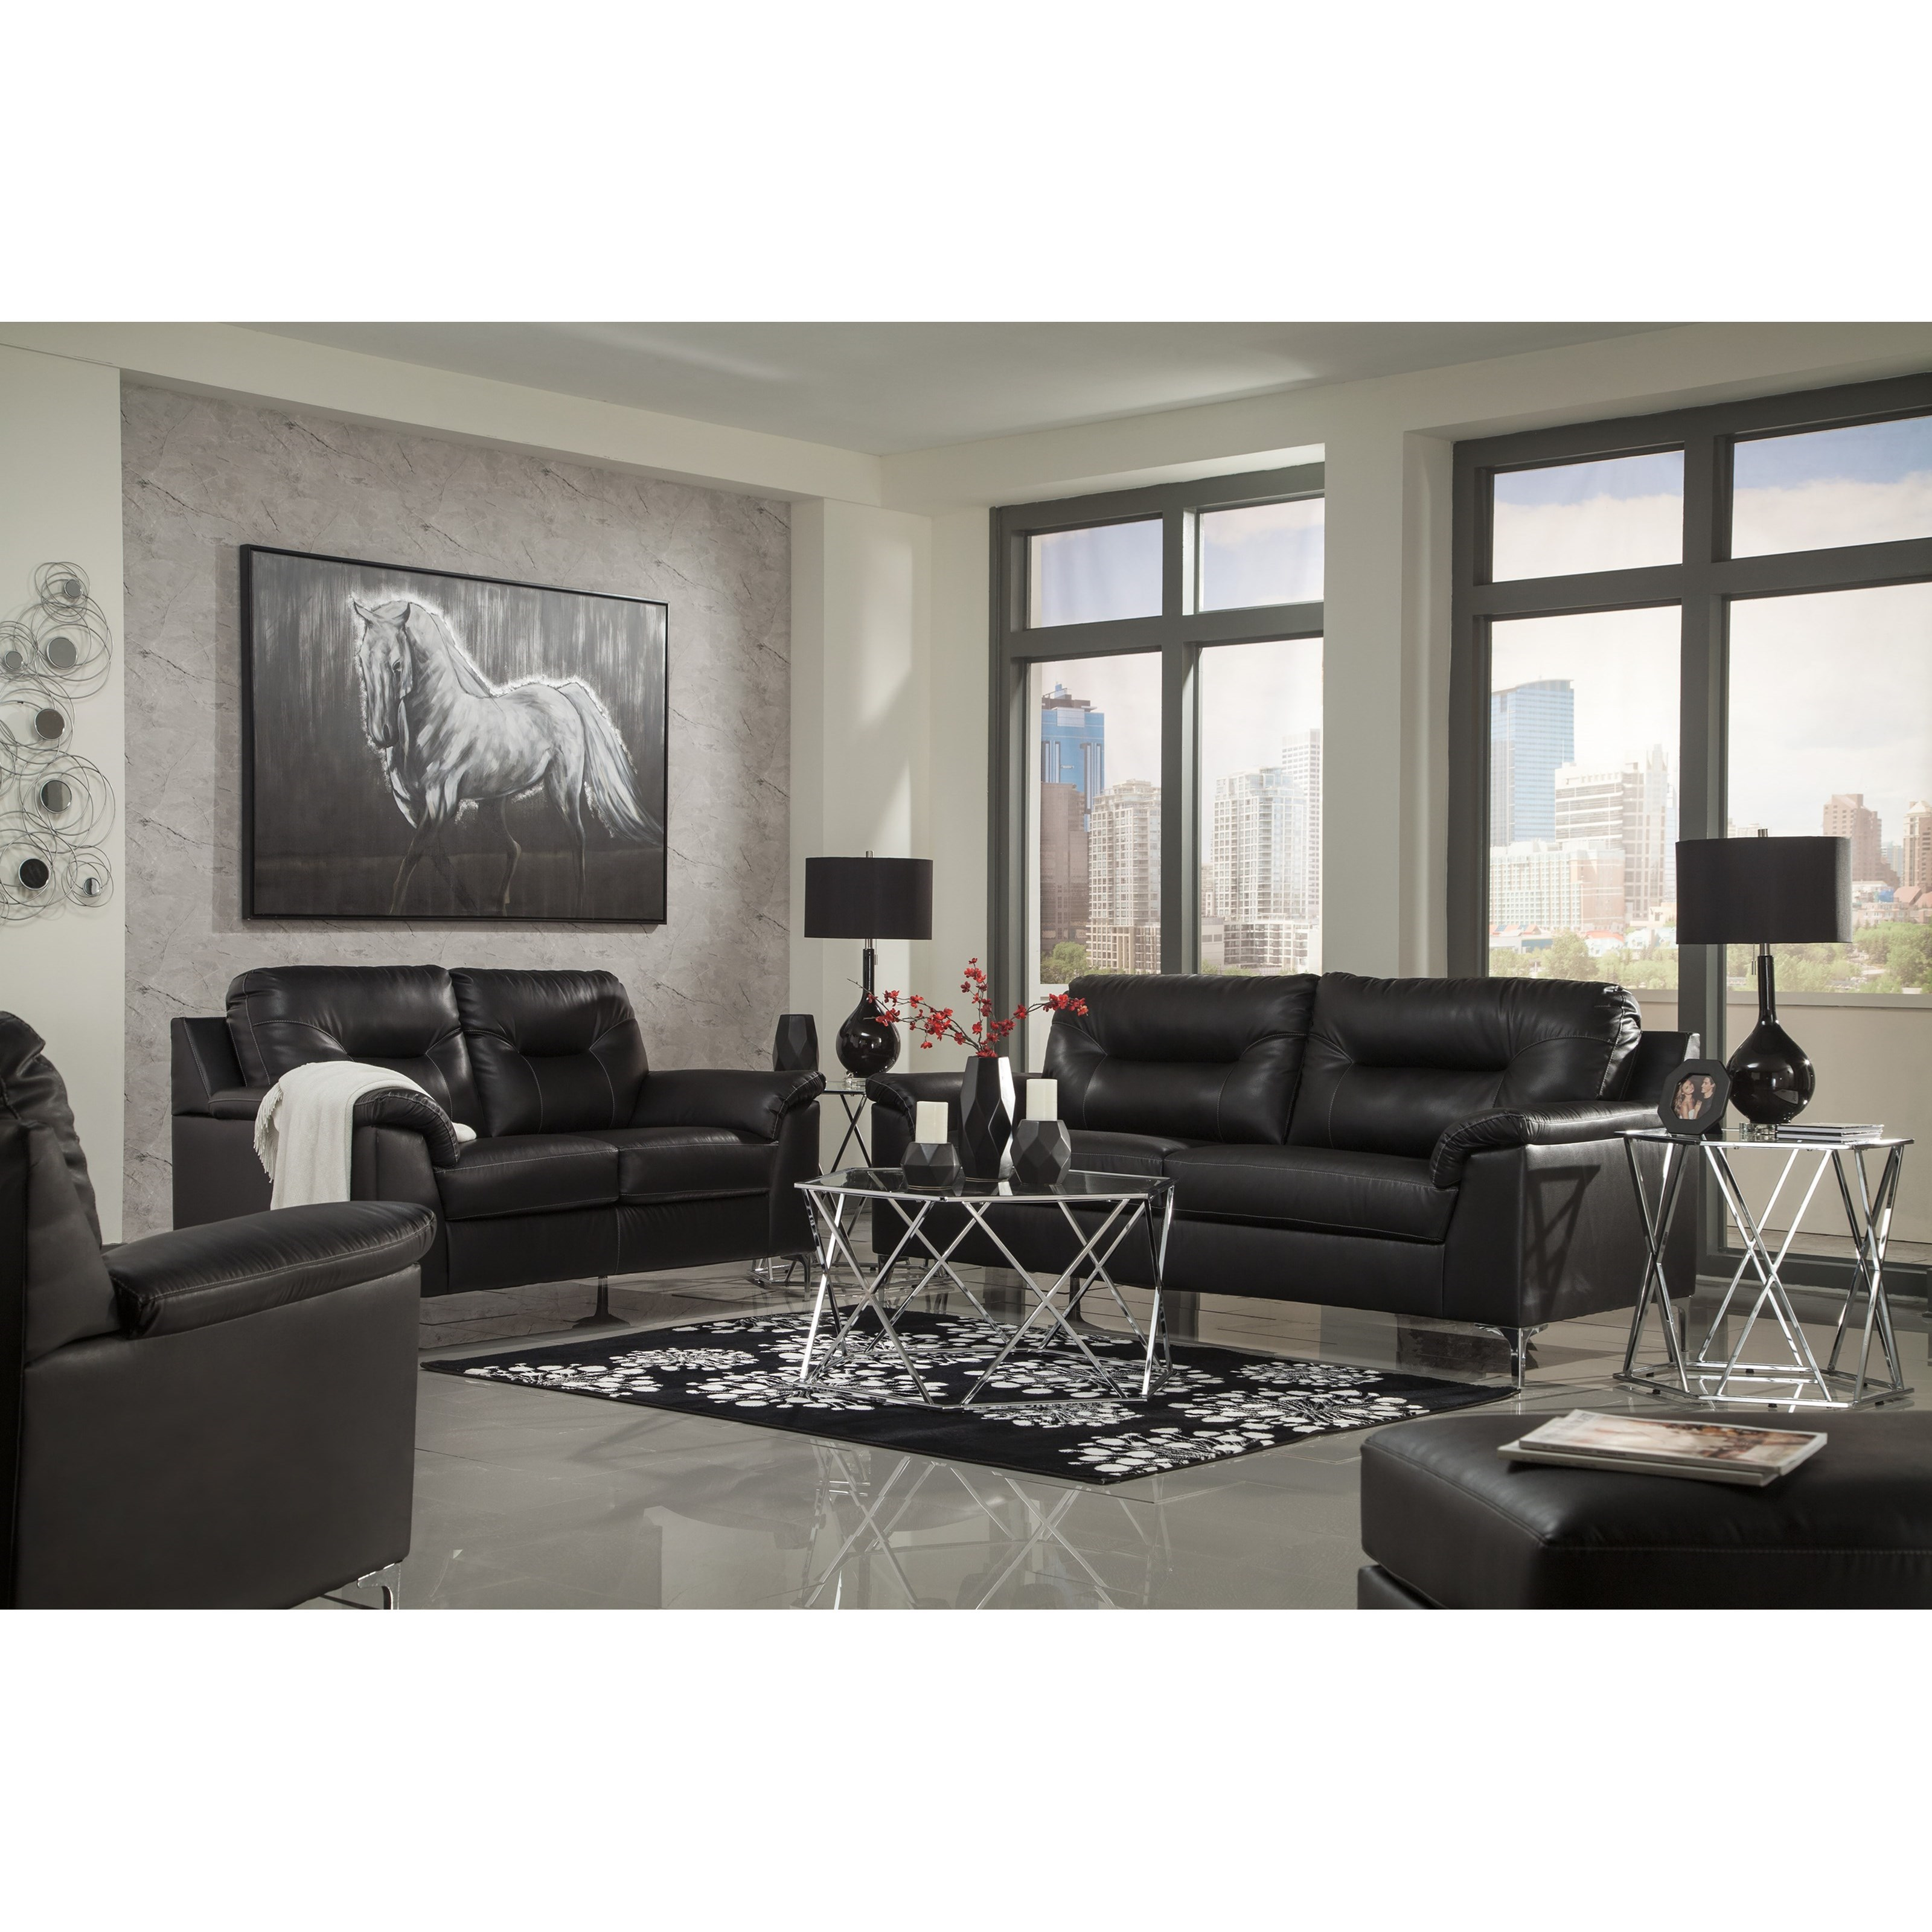 Signature design by ashley tensas living room group beck for Living room furniture groups